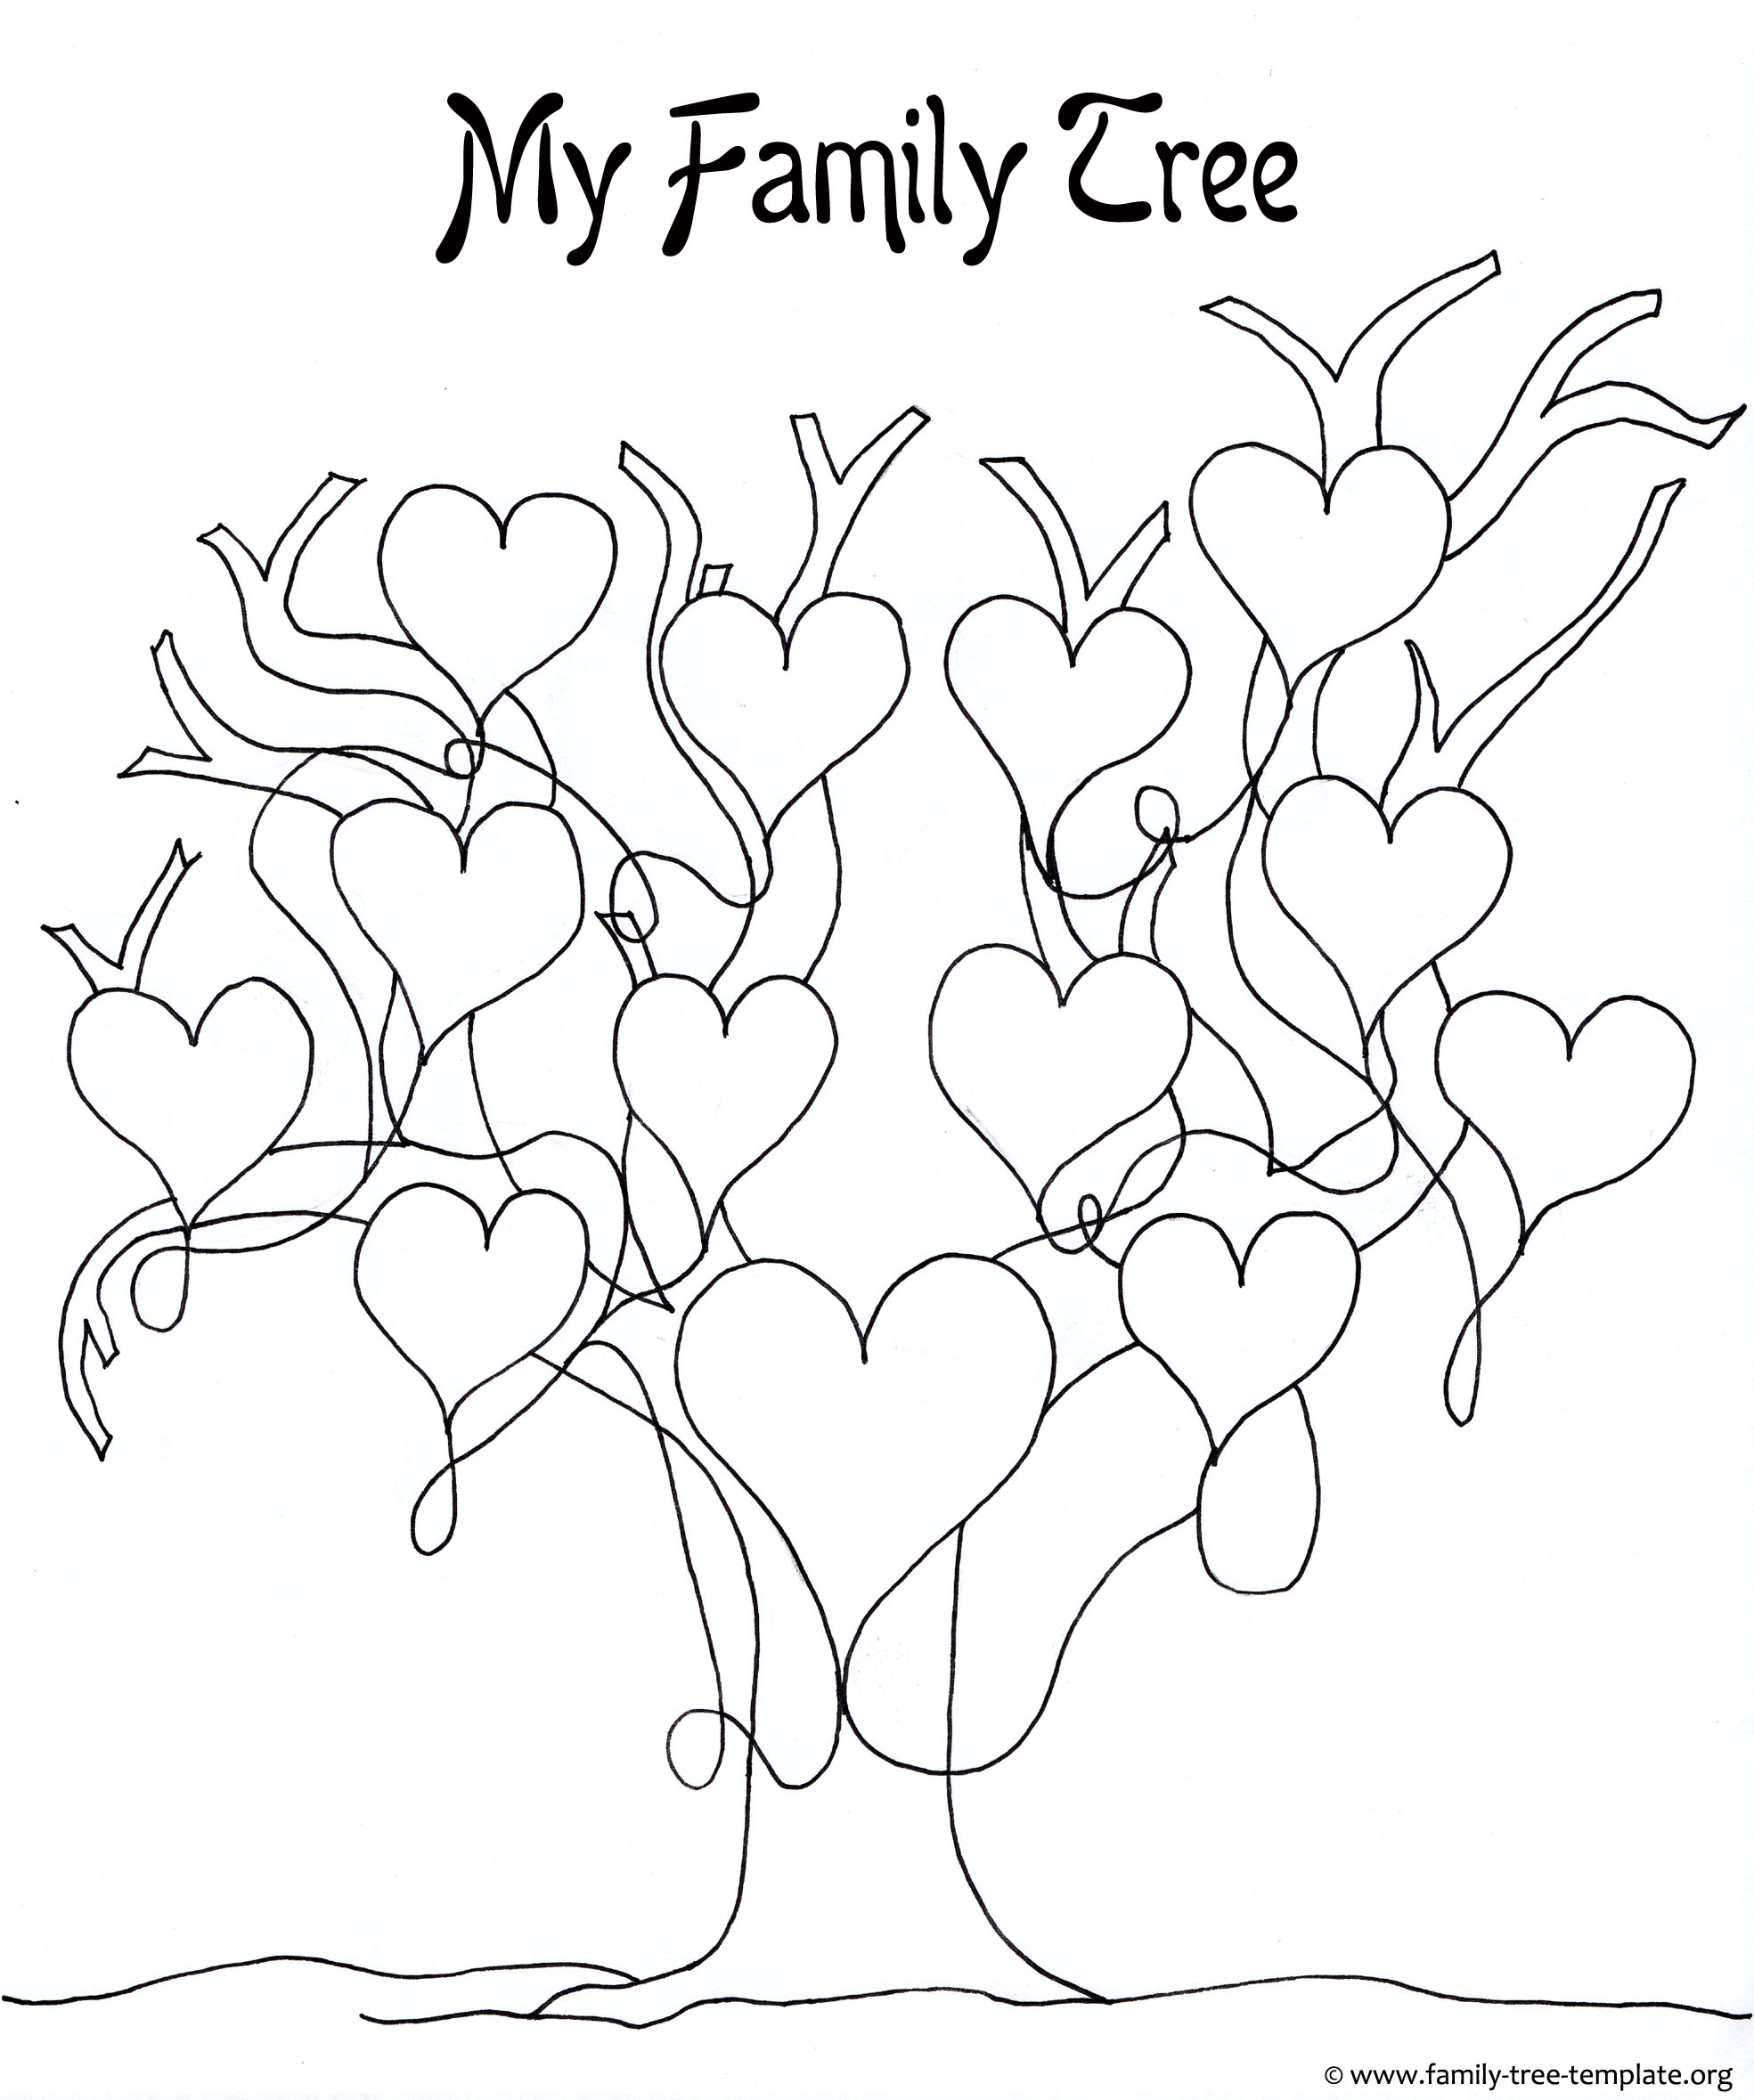 Printable family tree for girls to color and have fun with.